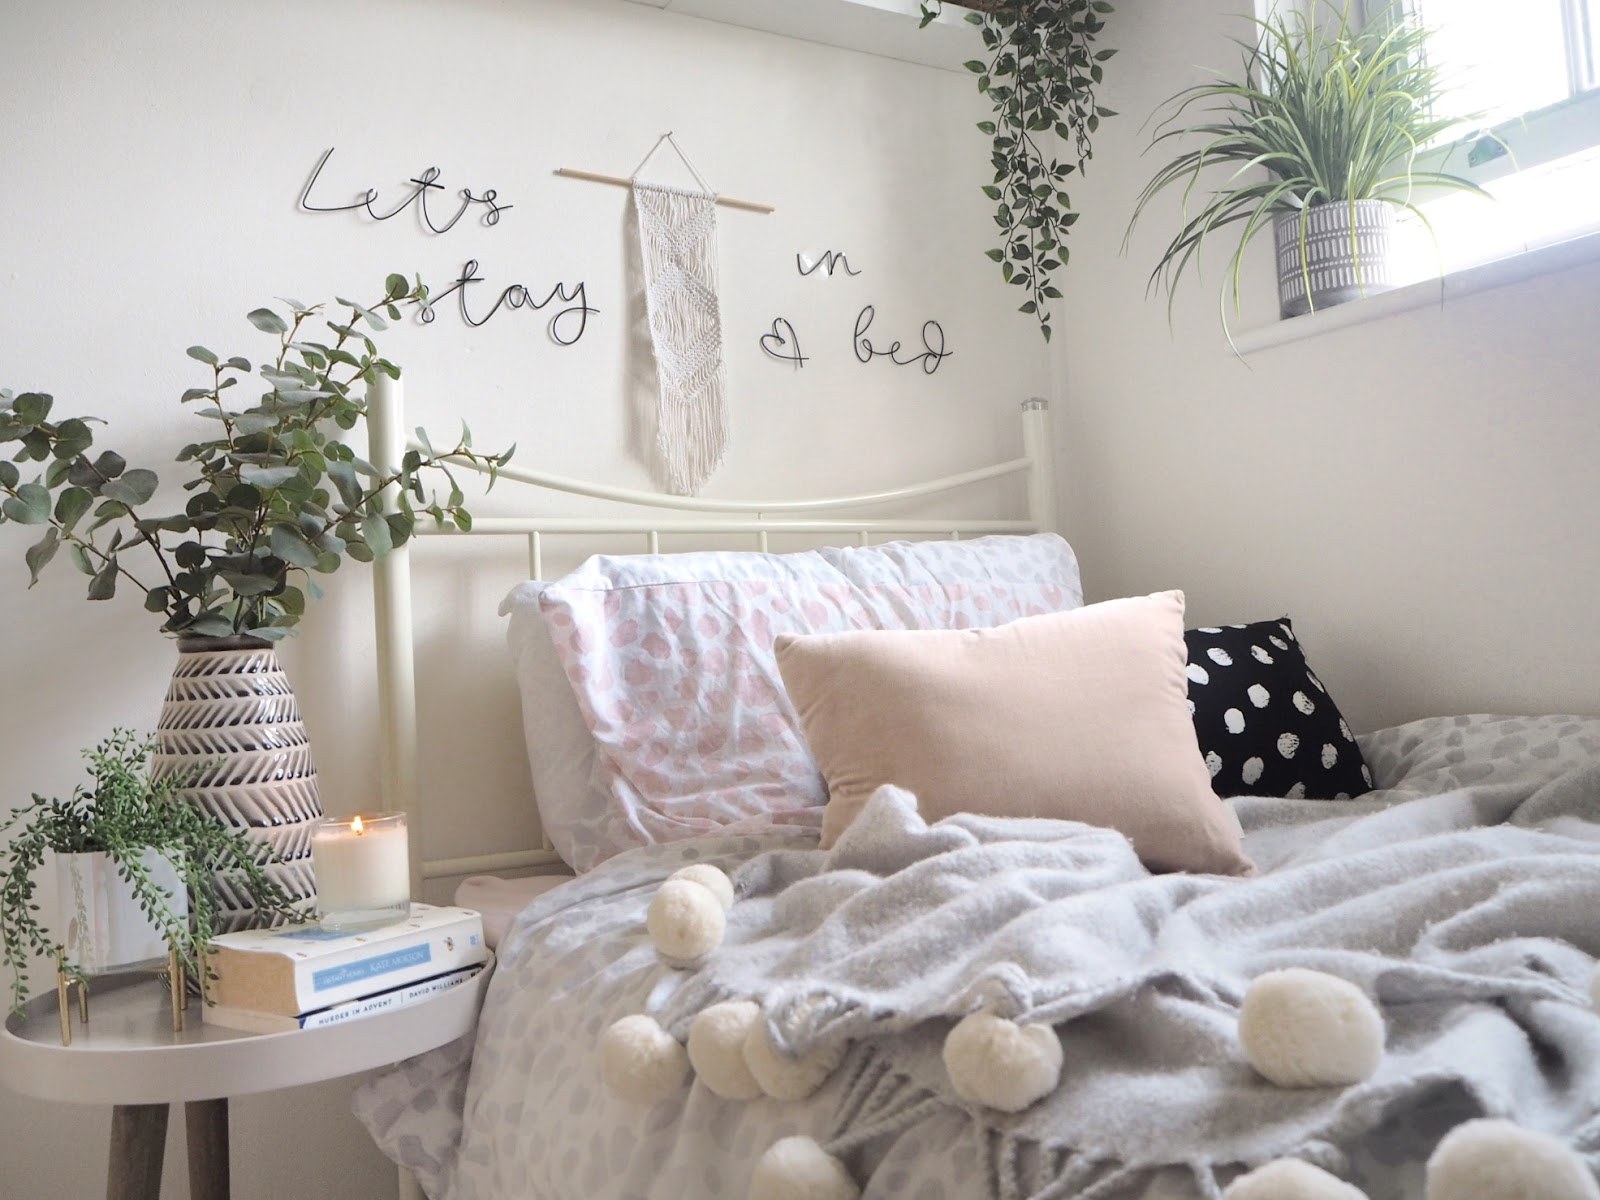 How to turn your university student room college dorm into a beautiful home from home, featuring storage tips, decoration ideas and tips on how to personalise a room